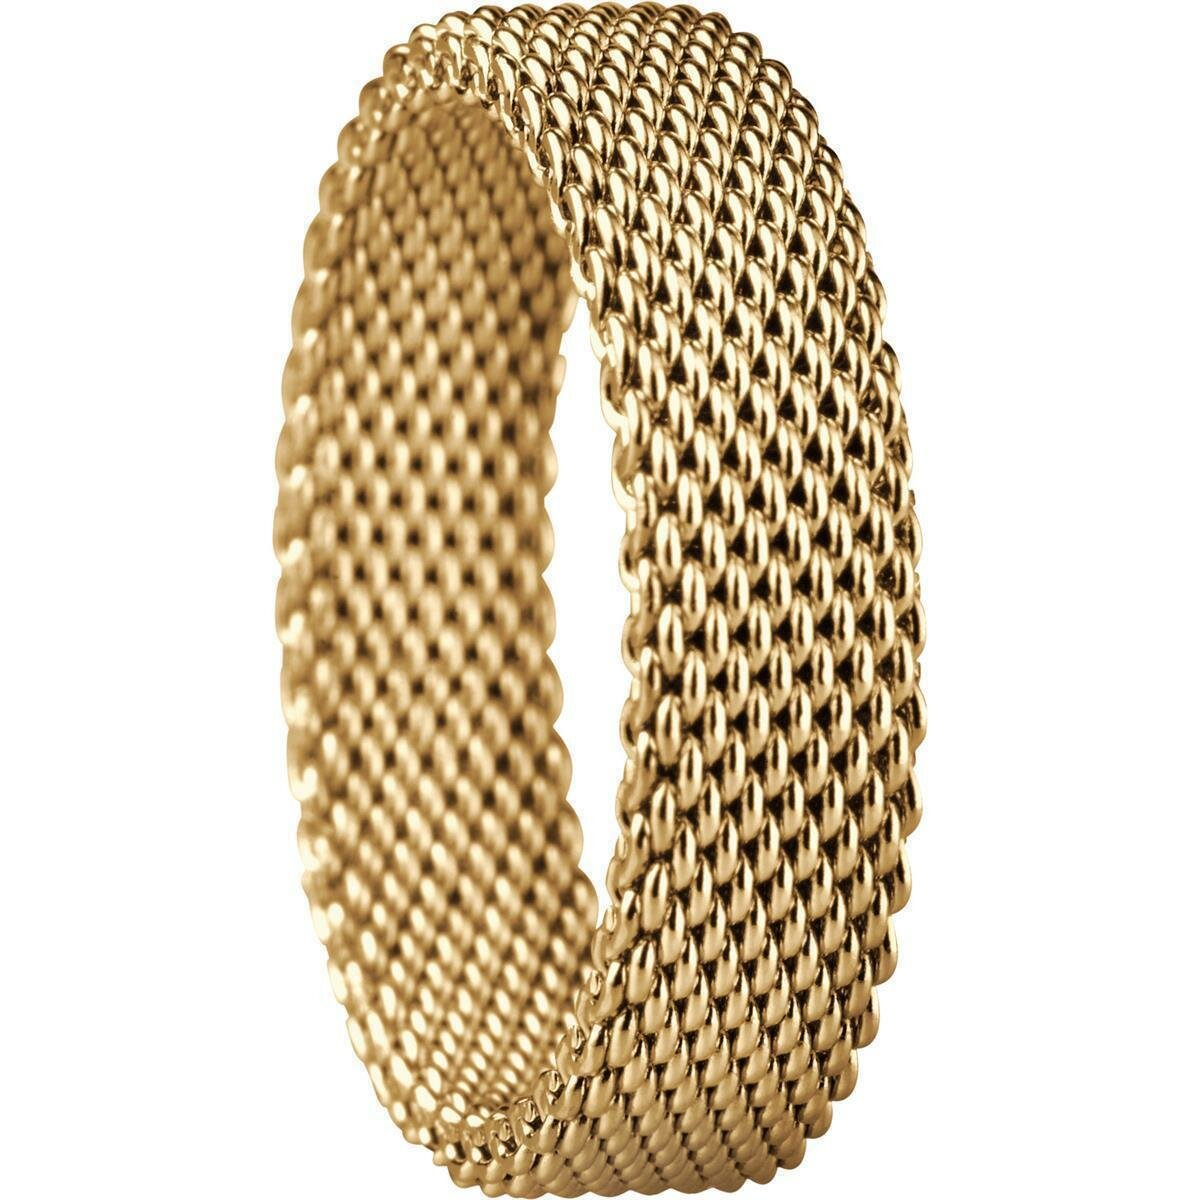 Bering Innenring 551-20-82 Milanaise gelbgold